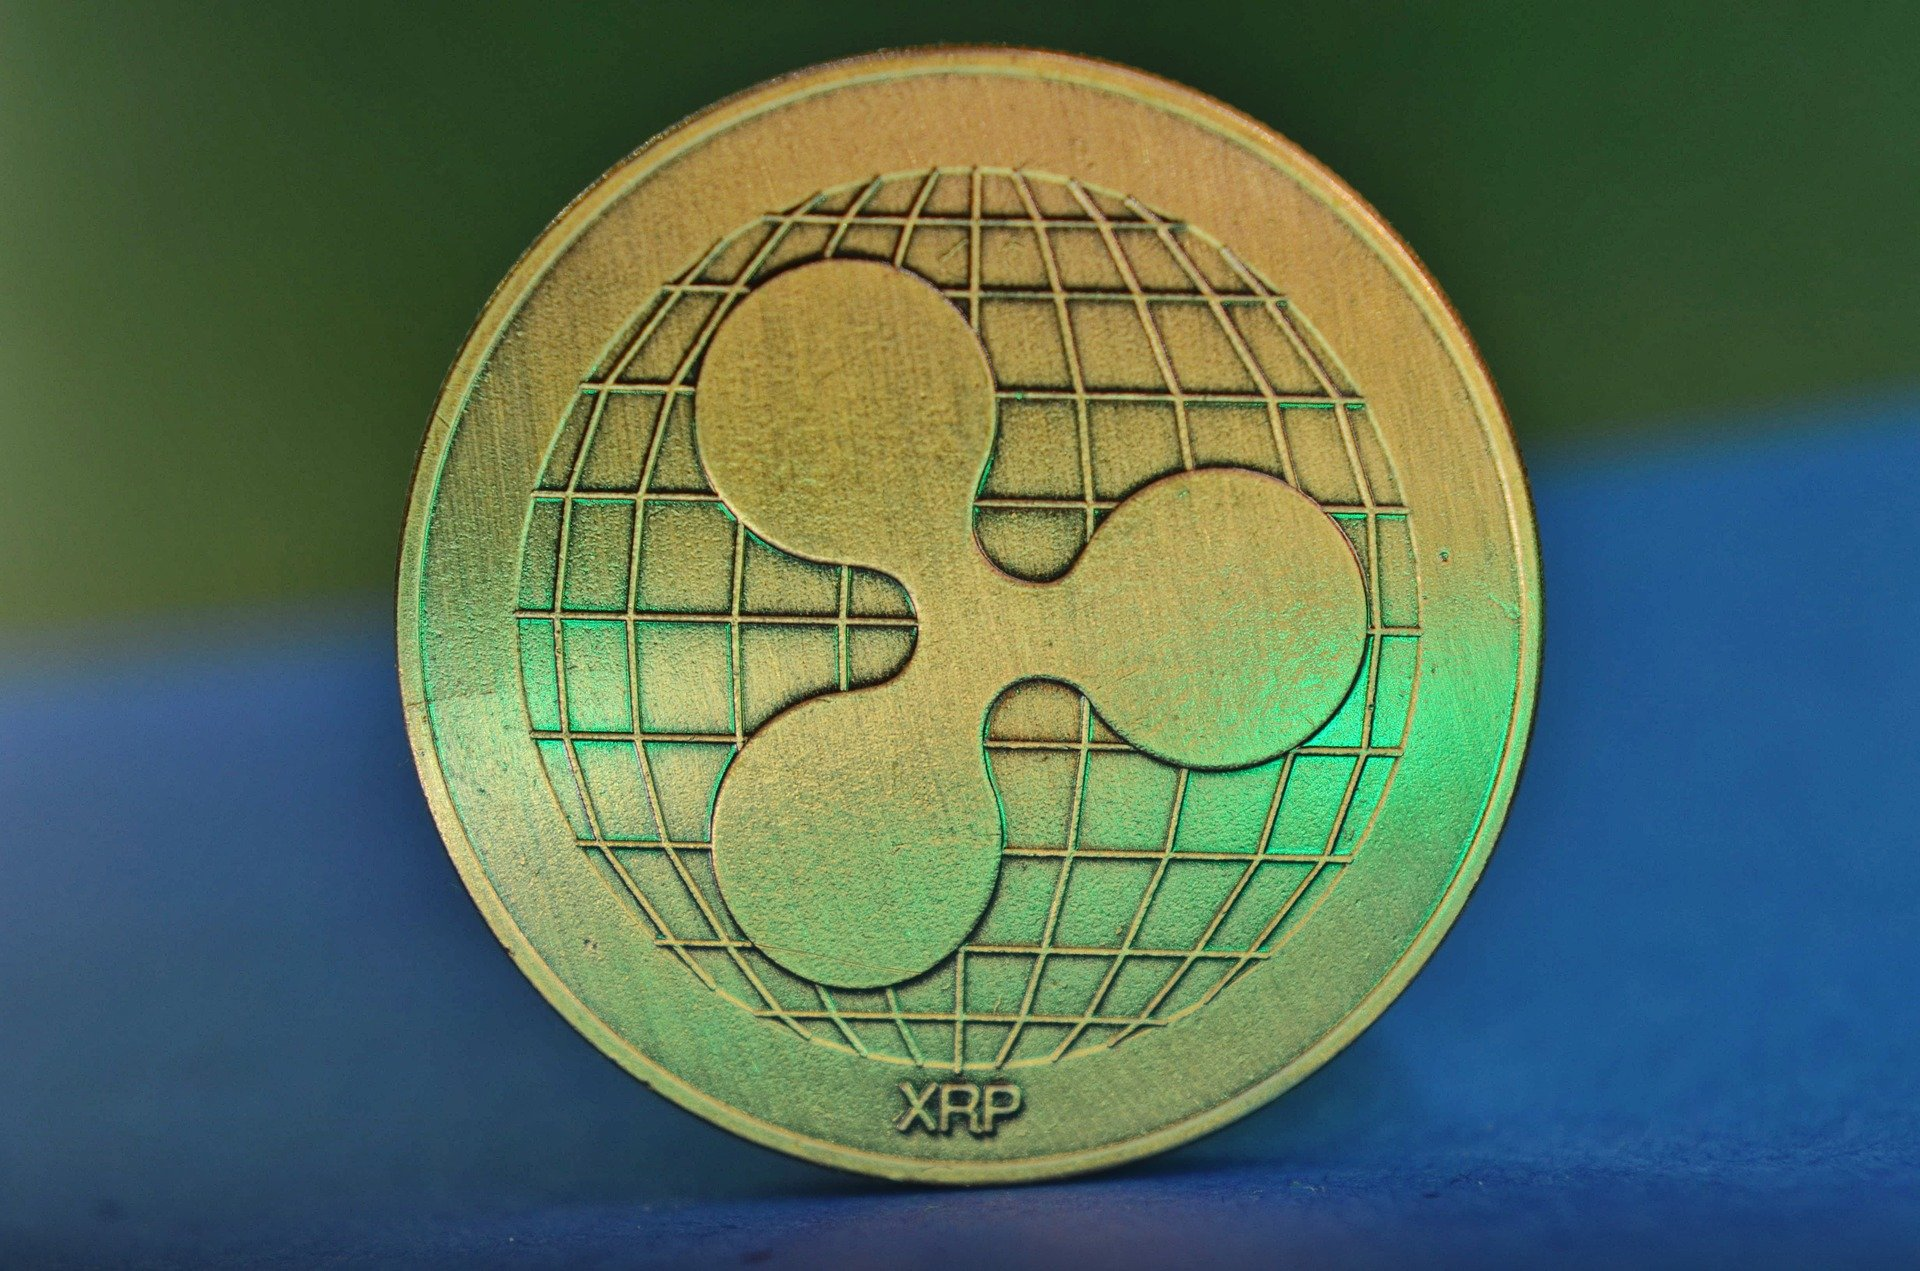 Ripple has a Strong Defense and has been One Step Ahead of SEC in the Ongoing Lawsuit